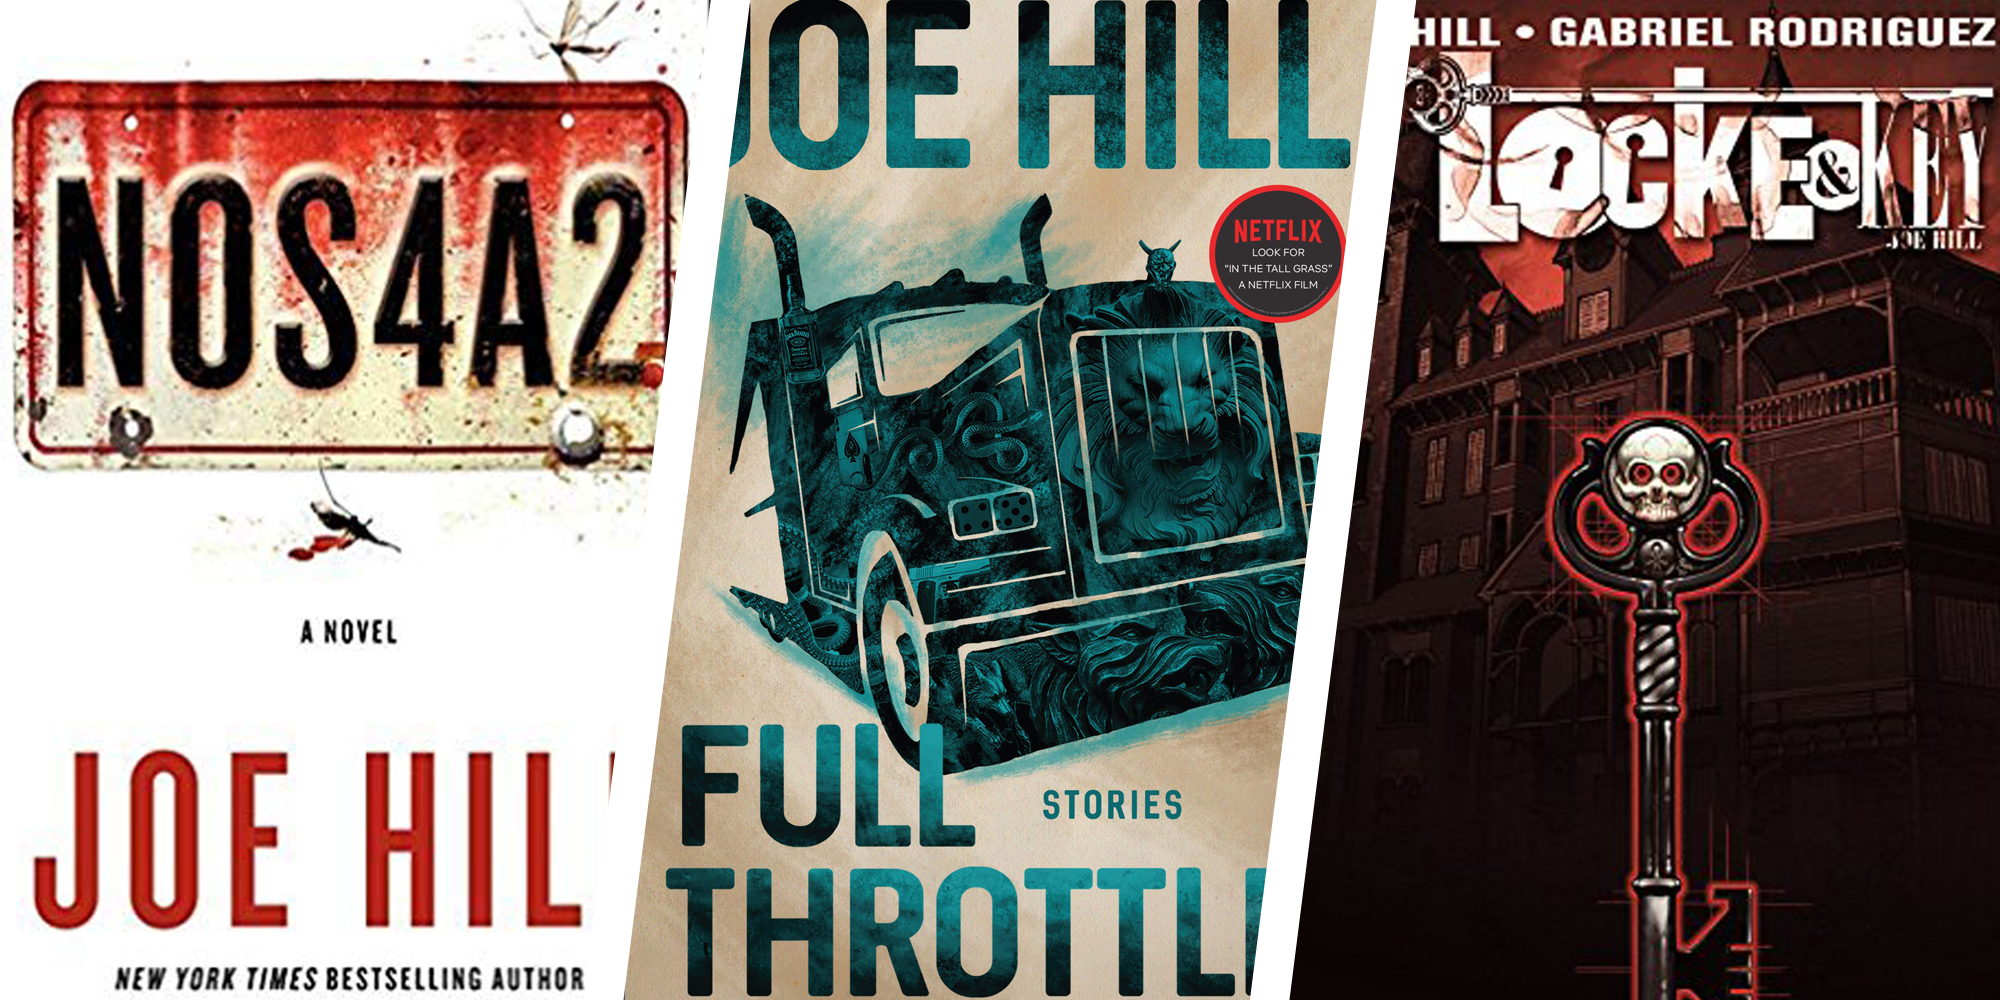 Read These Joe Hill Books and Comics If You Like Netflix's Locke and Key